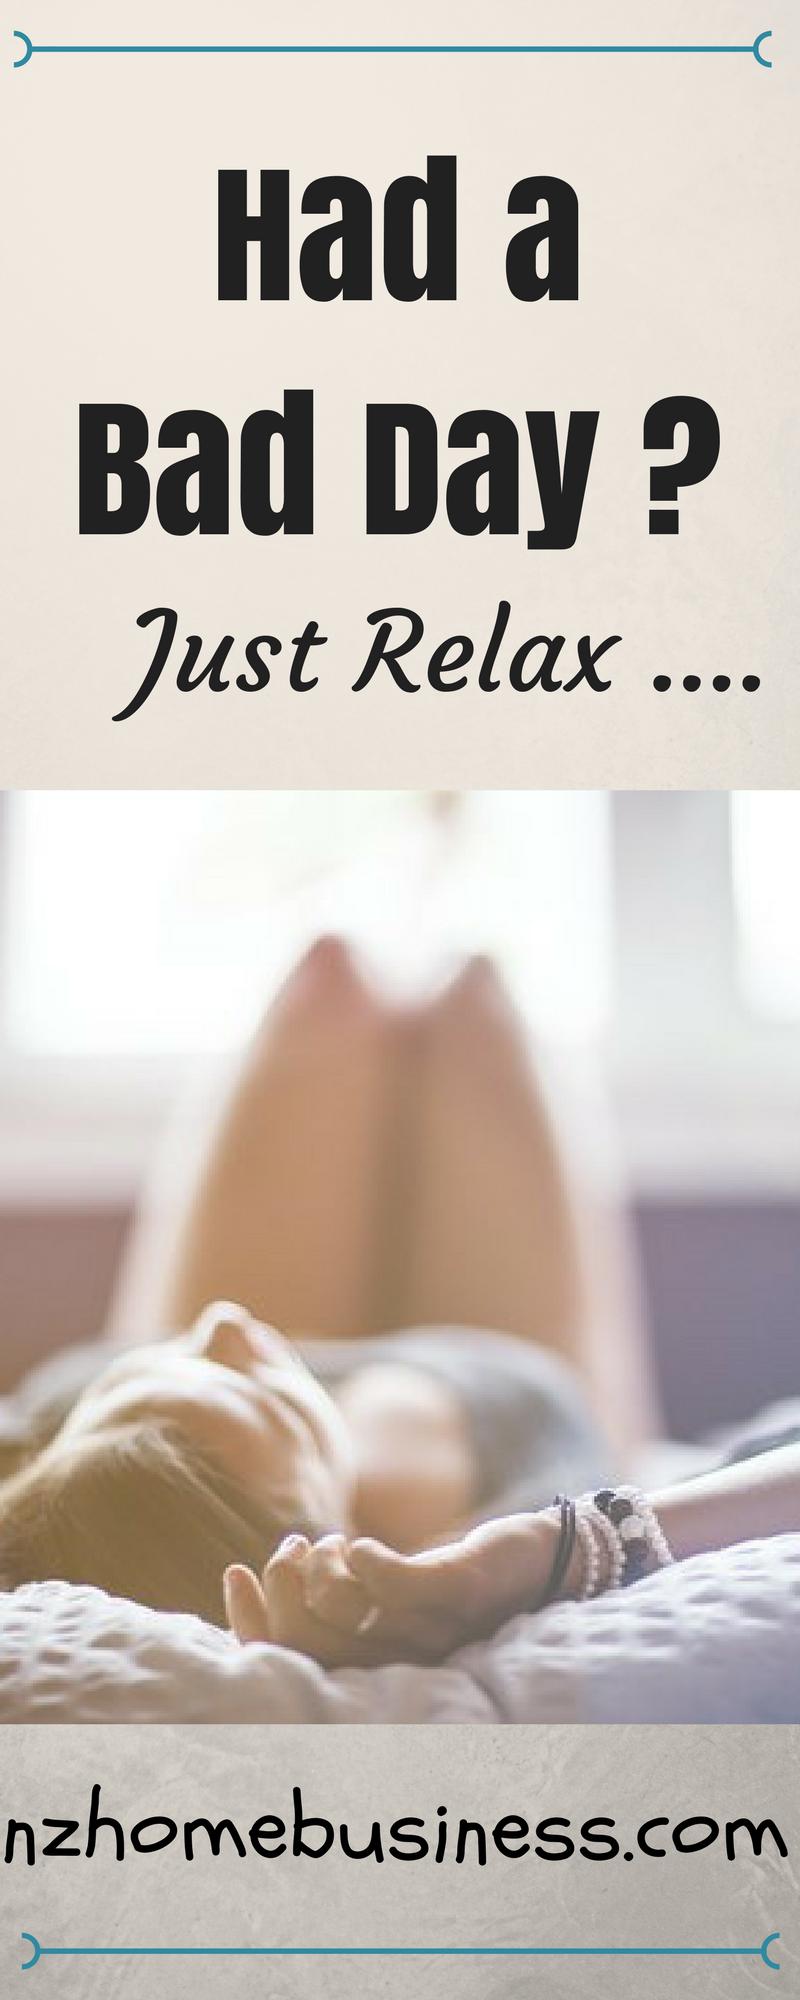 6 Ways To Deal With Those Bad Days | Having a bad day, Bad ...